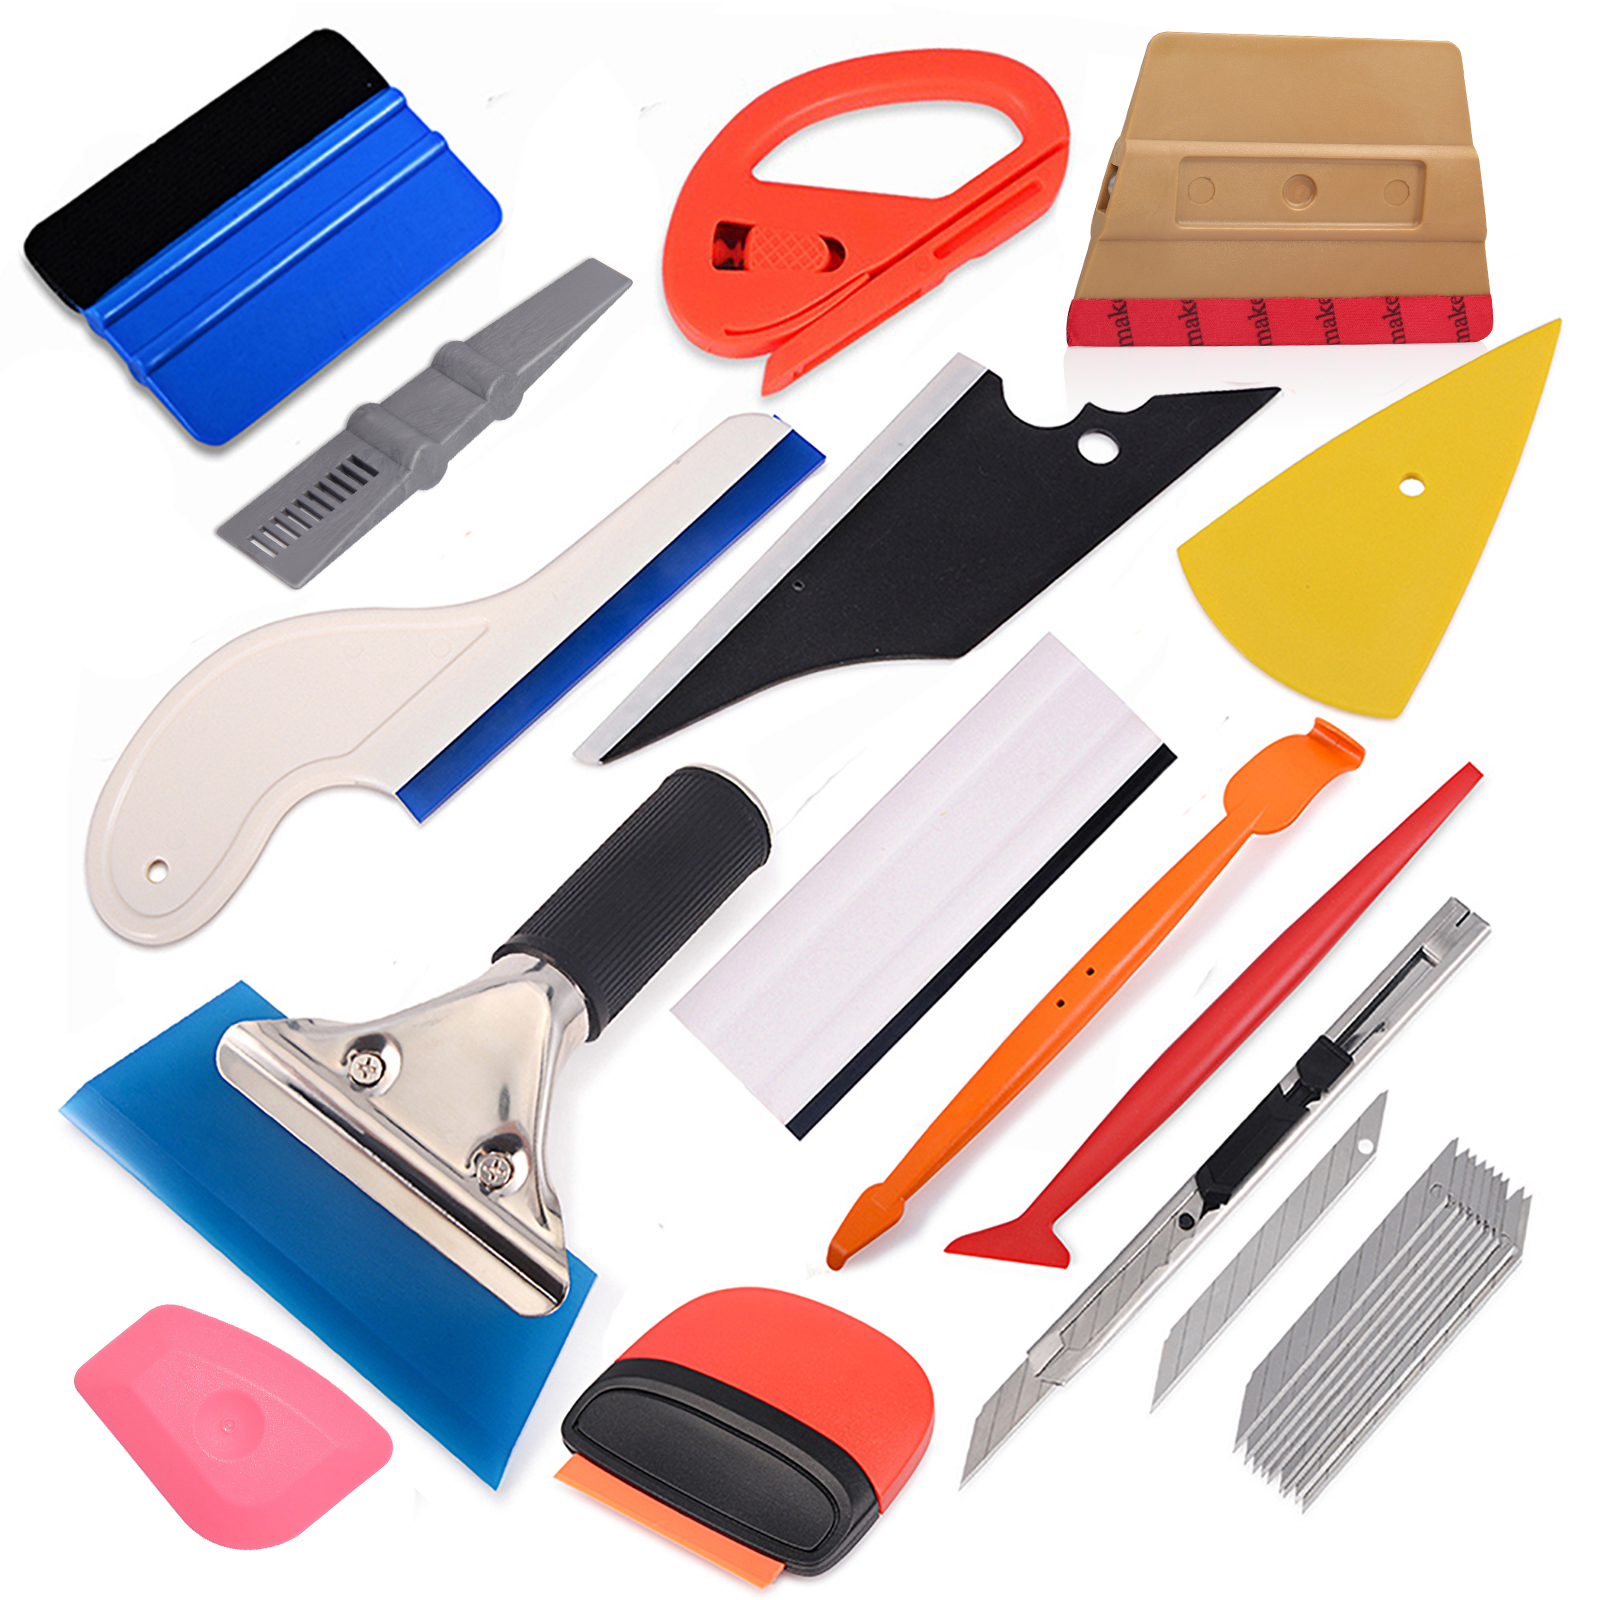 FOSHIO Vinyl Wrap Car Tools Kit Carbon Fiber Magnet Squeegee Car Accessories Window Tint Film Cutter Knife Wrapping Tools Set